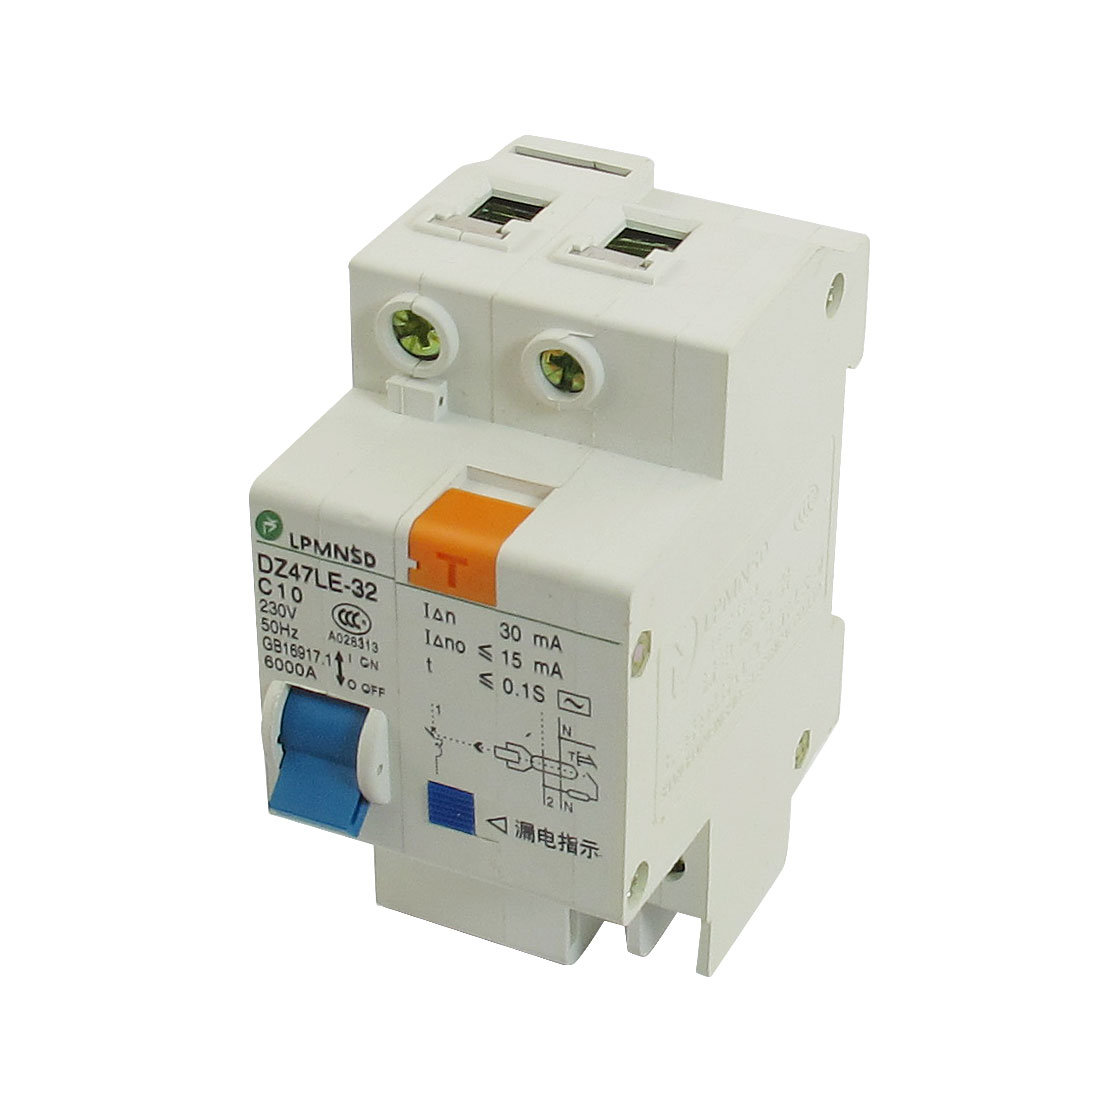 DIN Dail 1P Overload Proetction Circuit Breaker 230VAC 10A 6000A DZ47LE-32